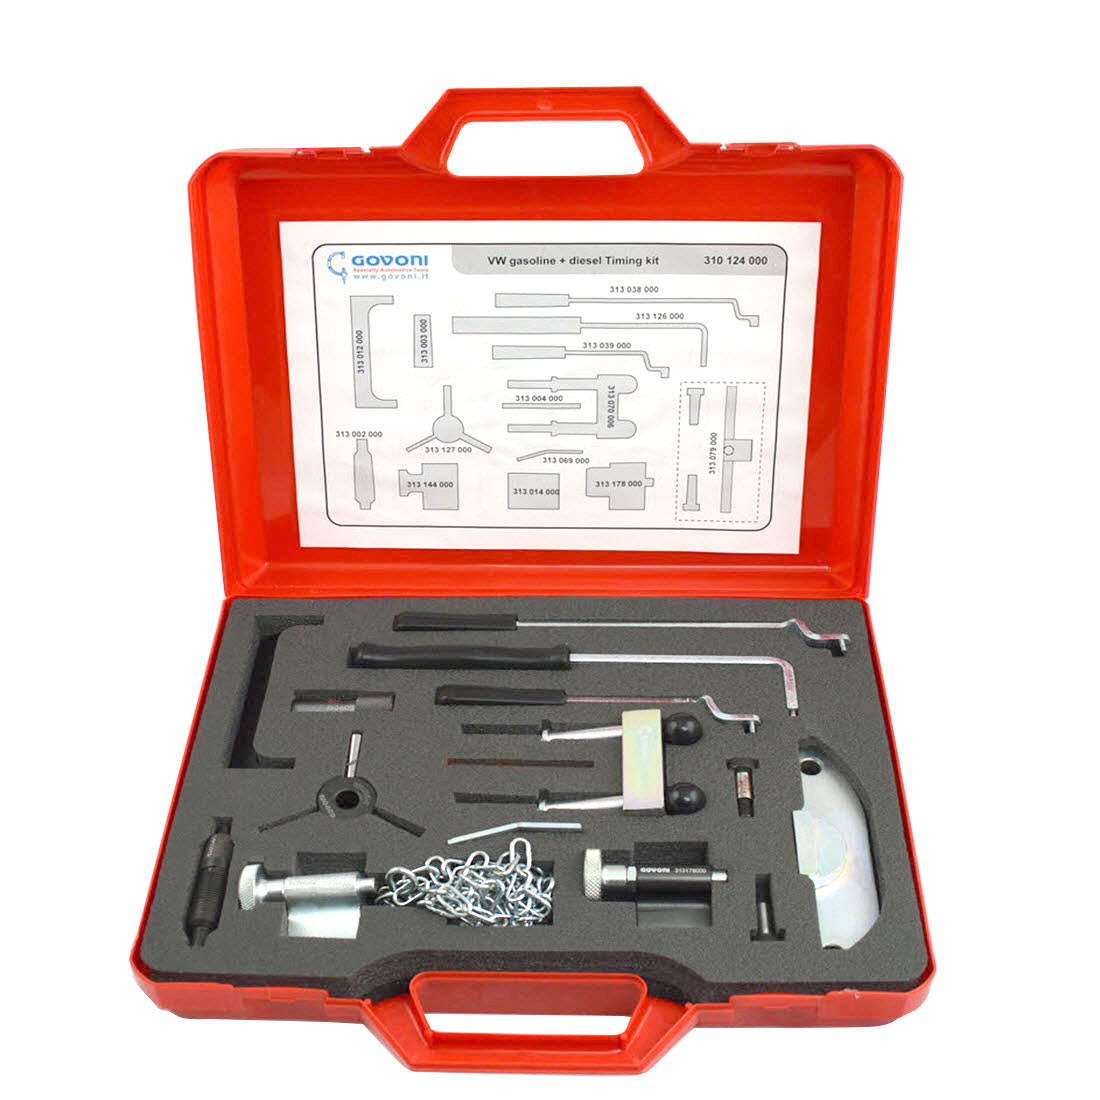 Volkswagen-timing-tool-kit